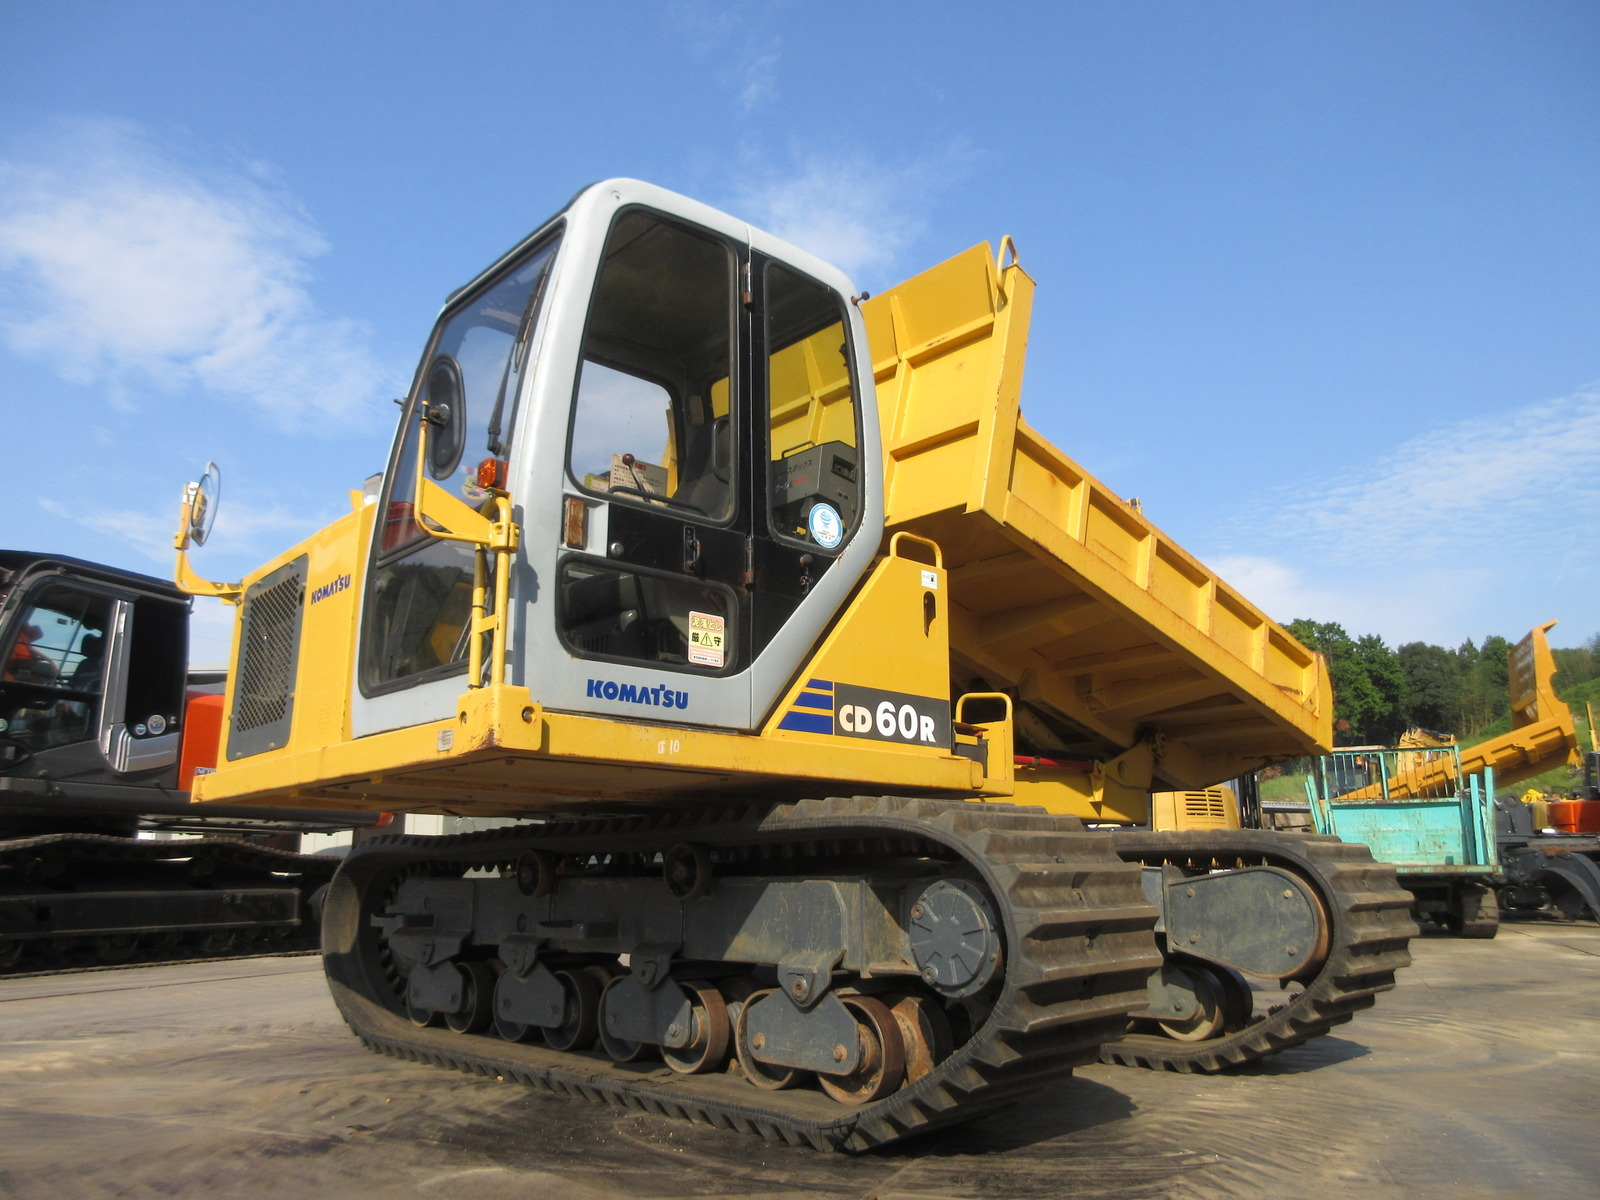 Used Construction Machine used Crawler carrier KOMATSU CD60R-1 Photos